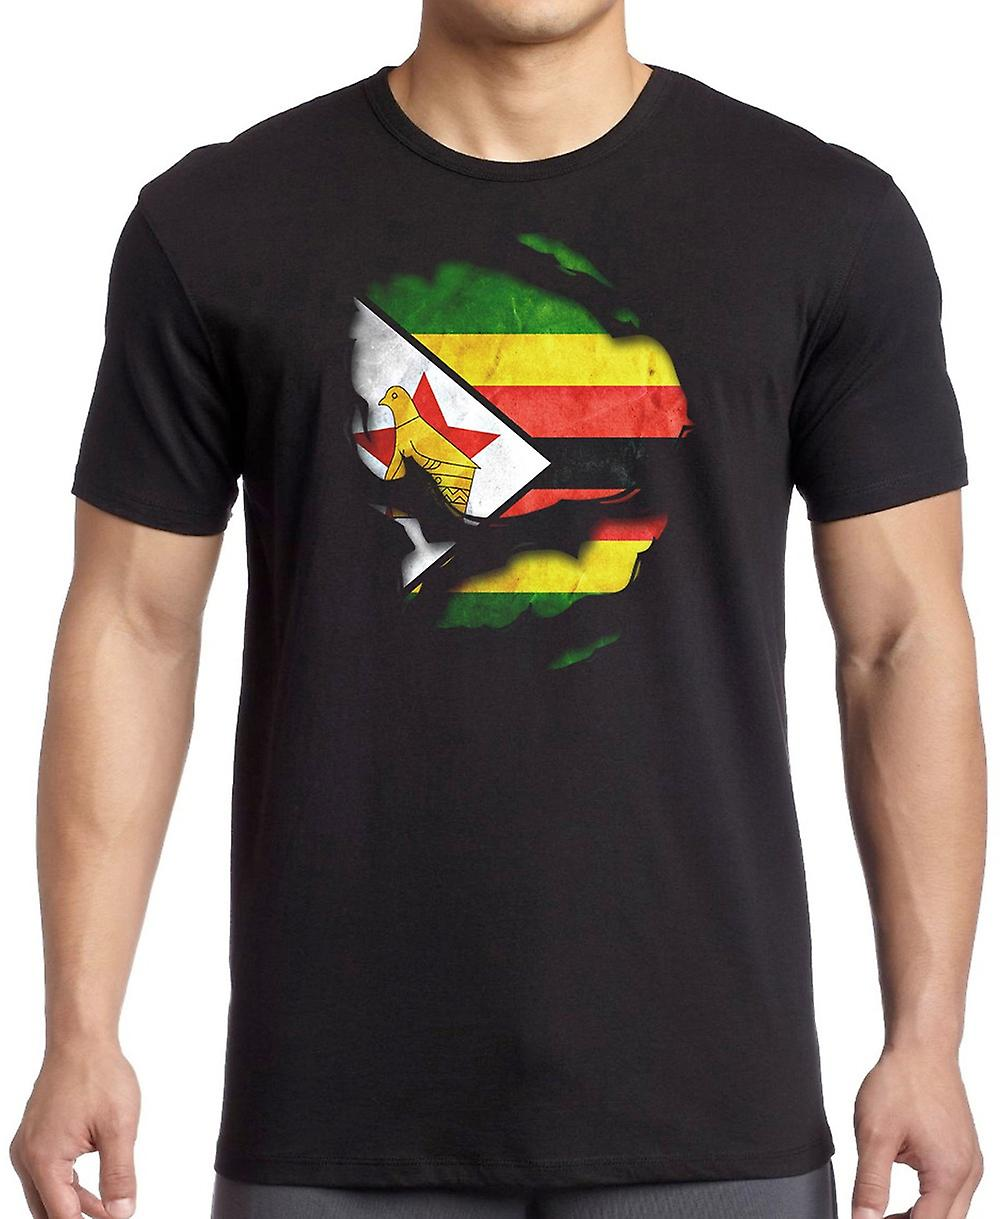 Zimbabwe Ripped Effect Under Shirt Kids T Shirt